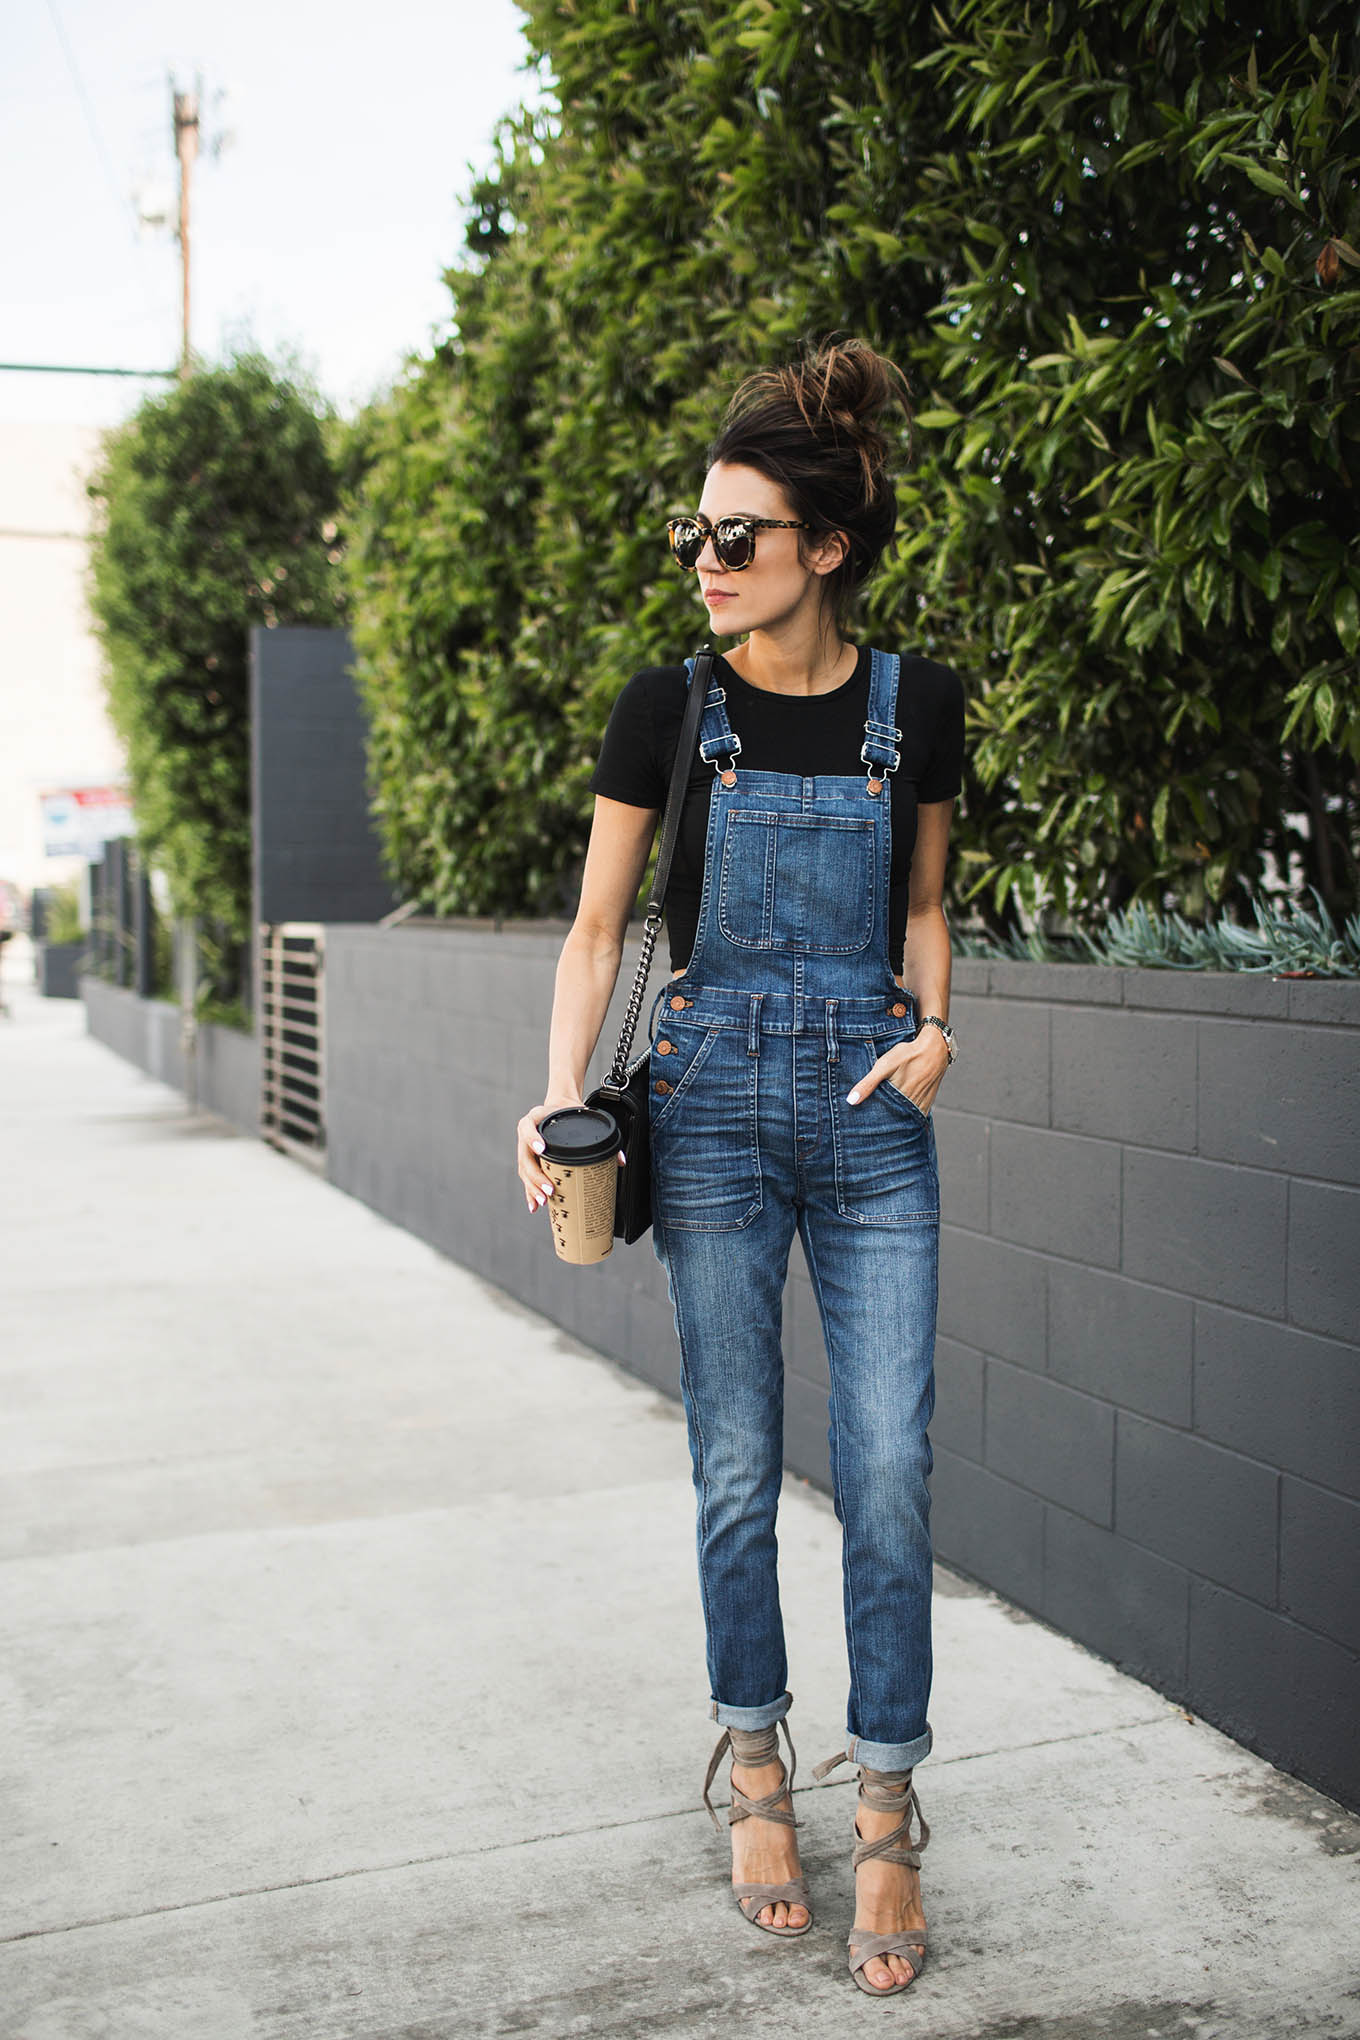 Overalls | Hello Fashion | Bloglovin'